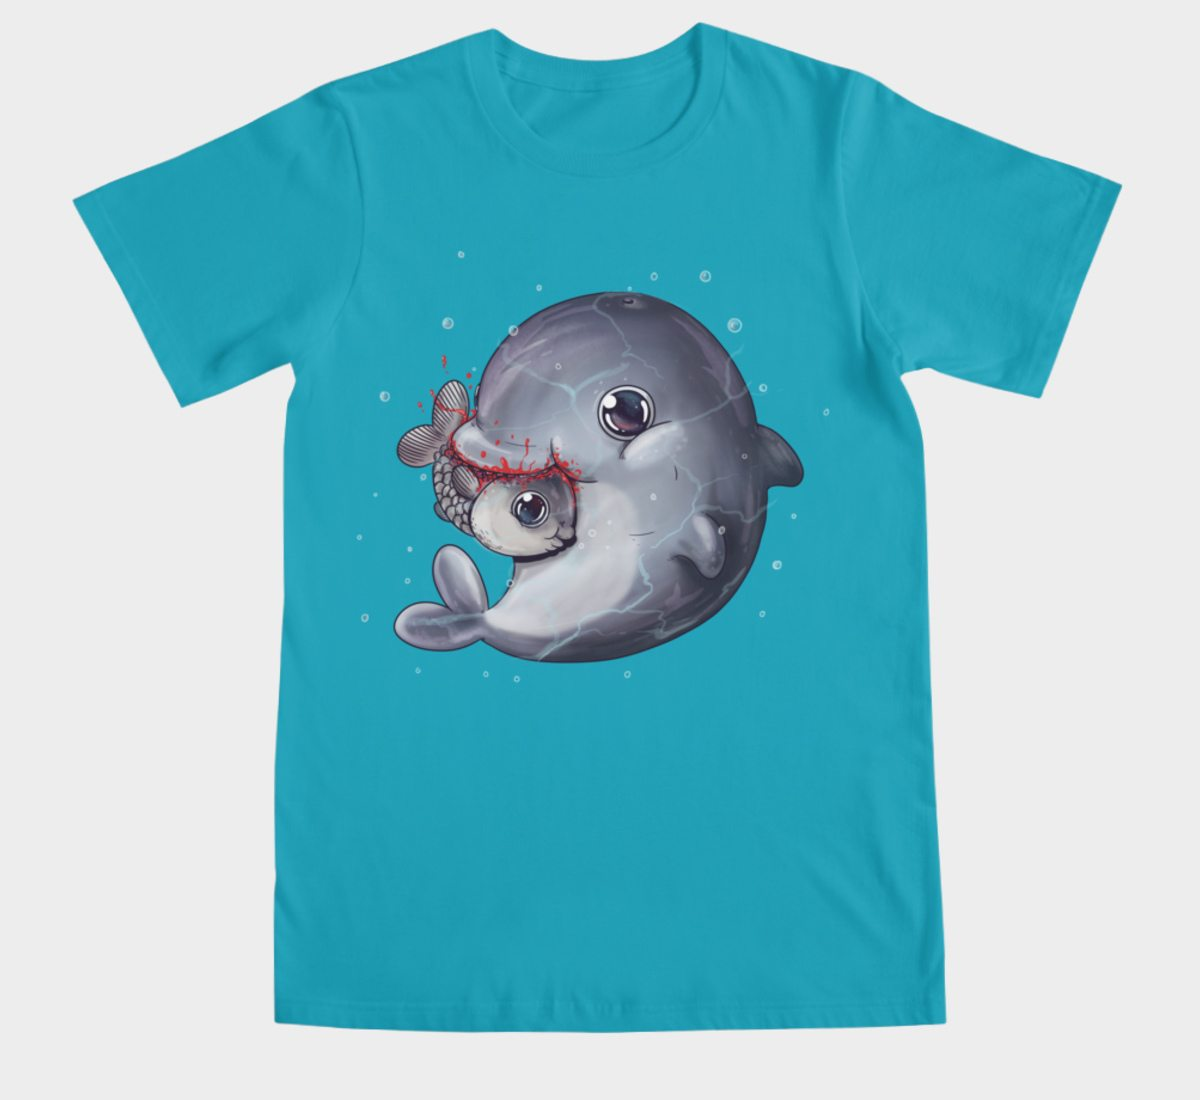 shirt_guys_01_dolphin_7